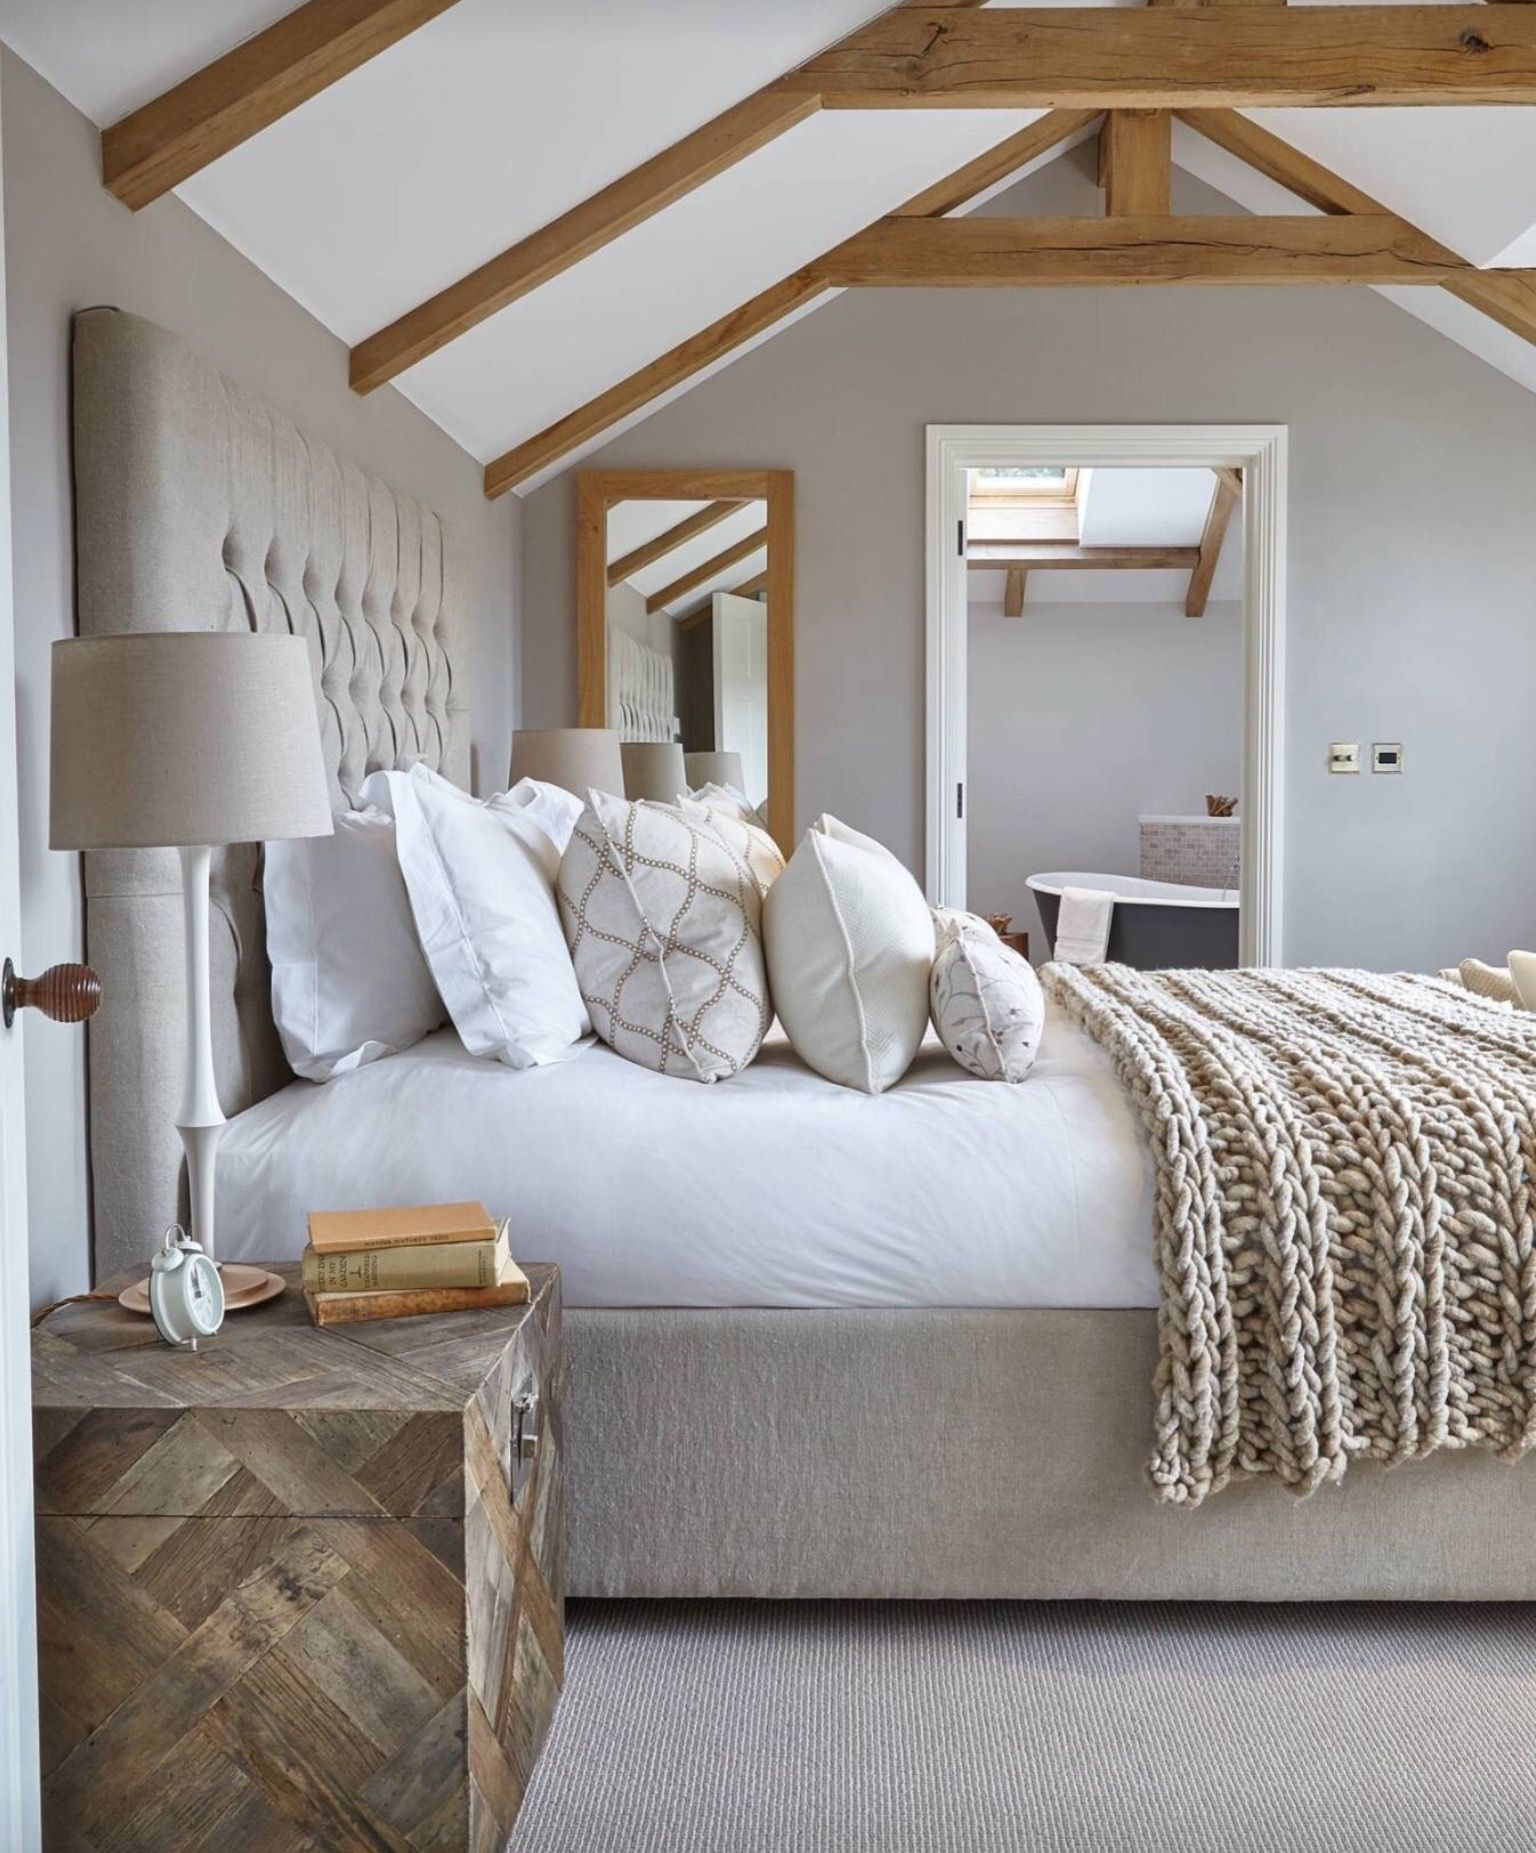 Too Many Pillows, But I Like The Colors And The Wood Beams